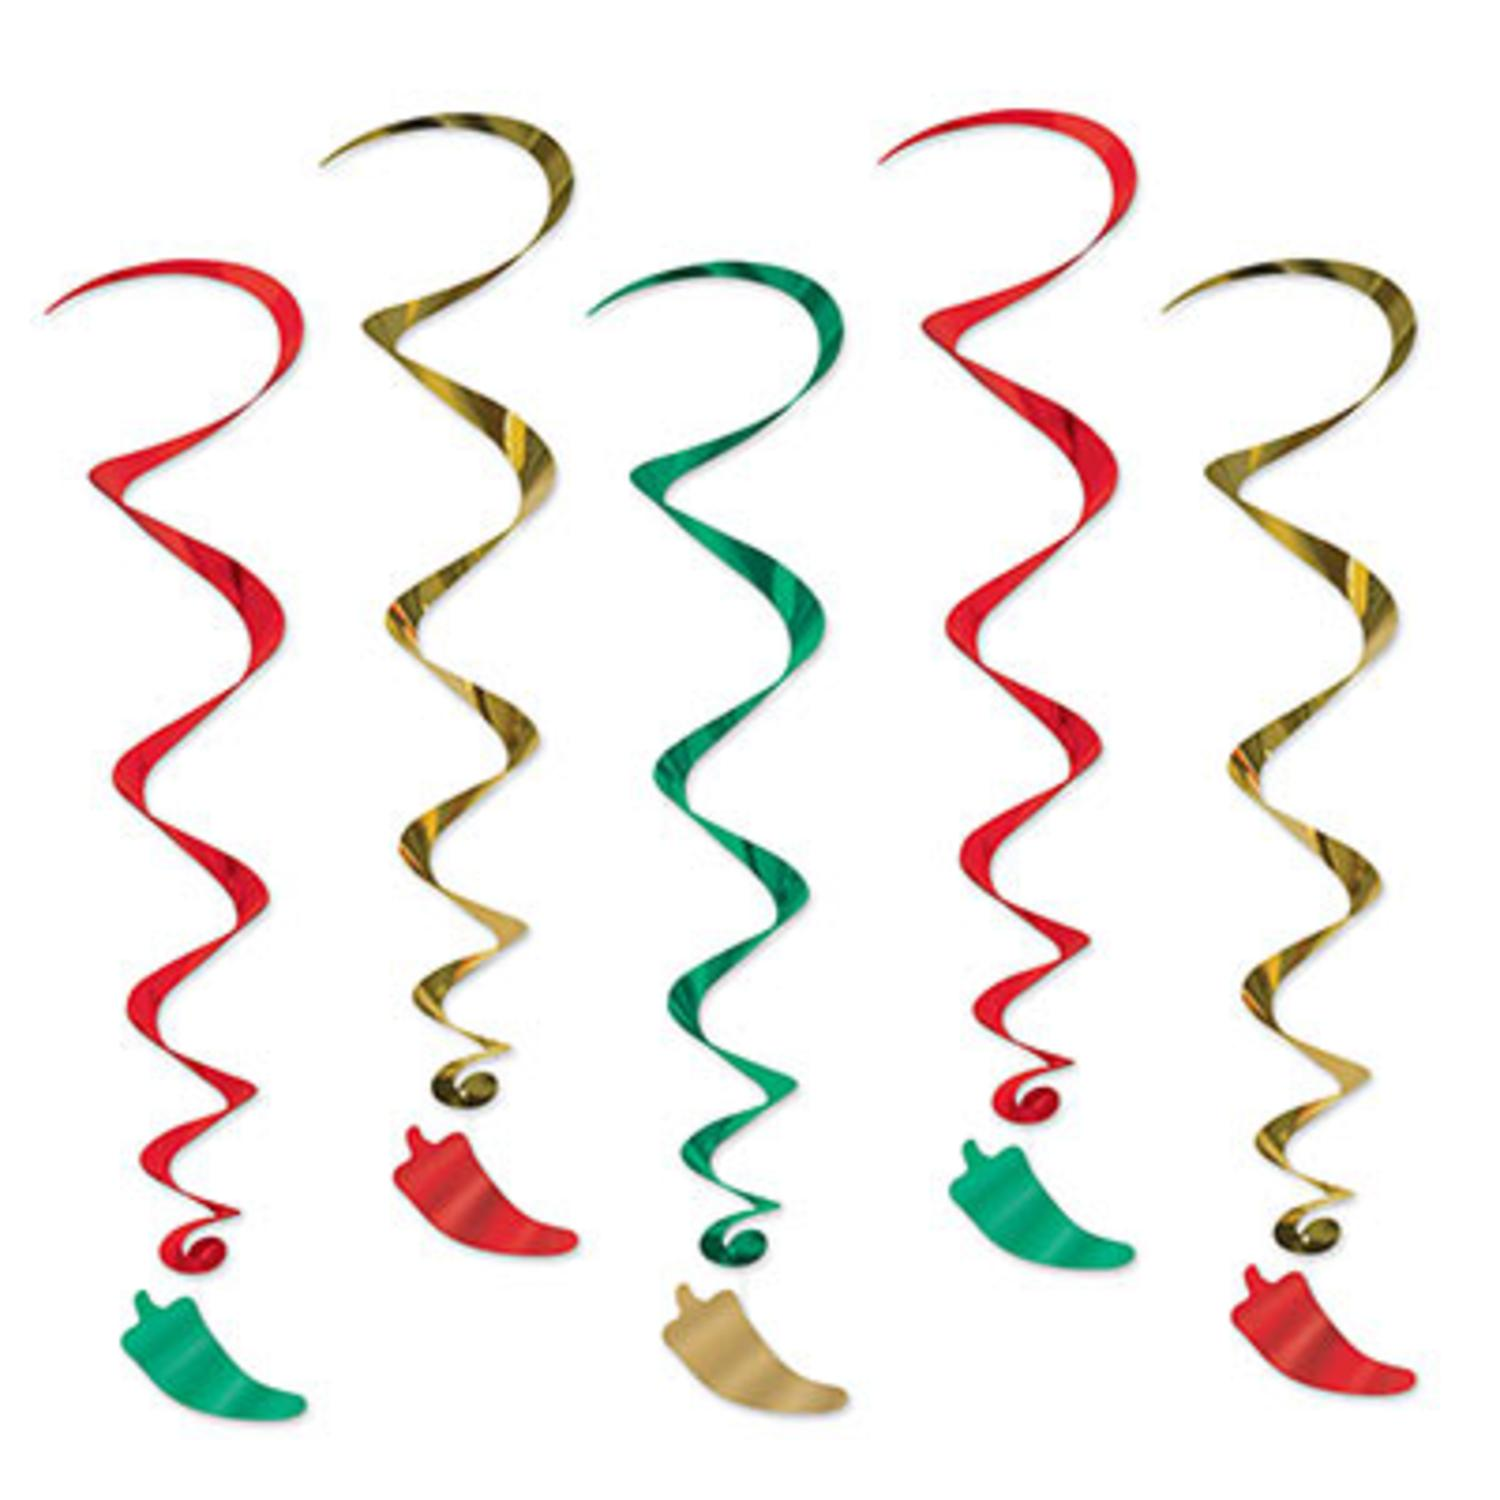 Pack of 30 Southwestern Chili Pepper Metallic Spiral Hanging Party Decoration Whirls 3'